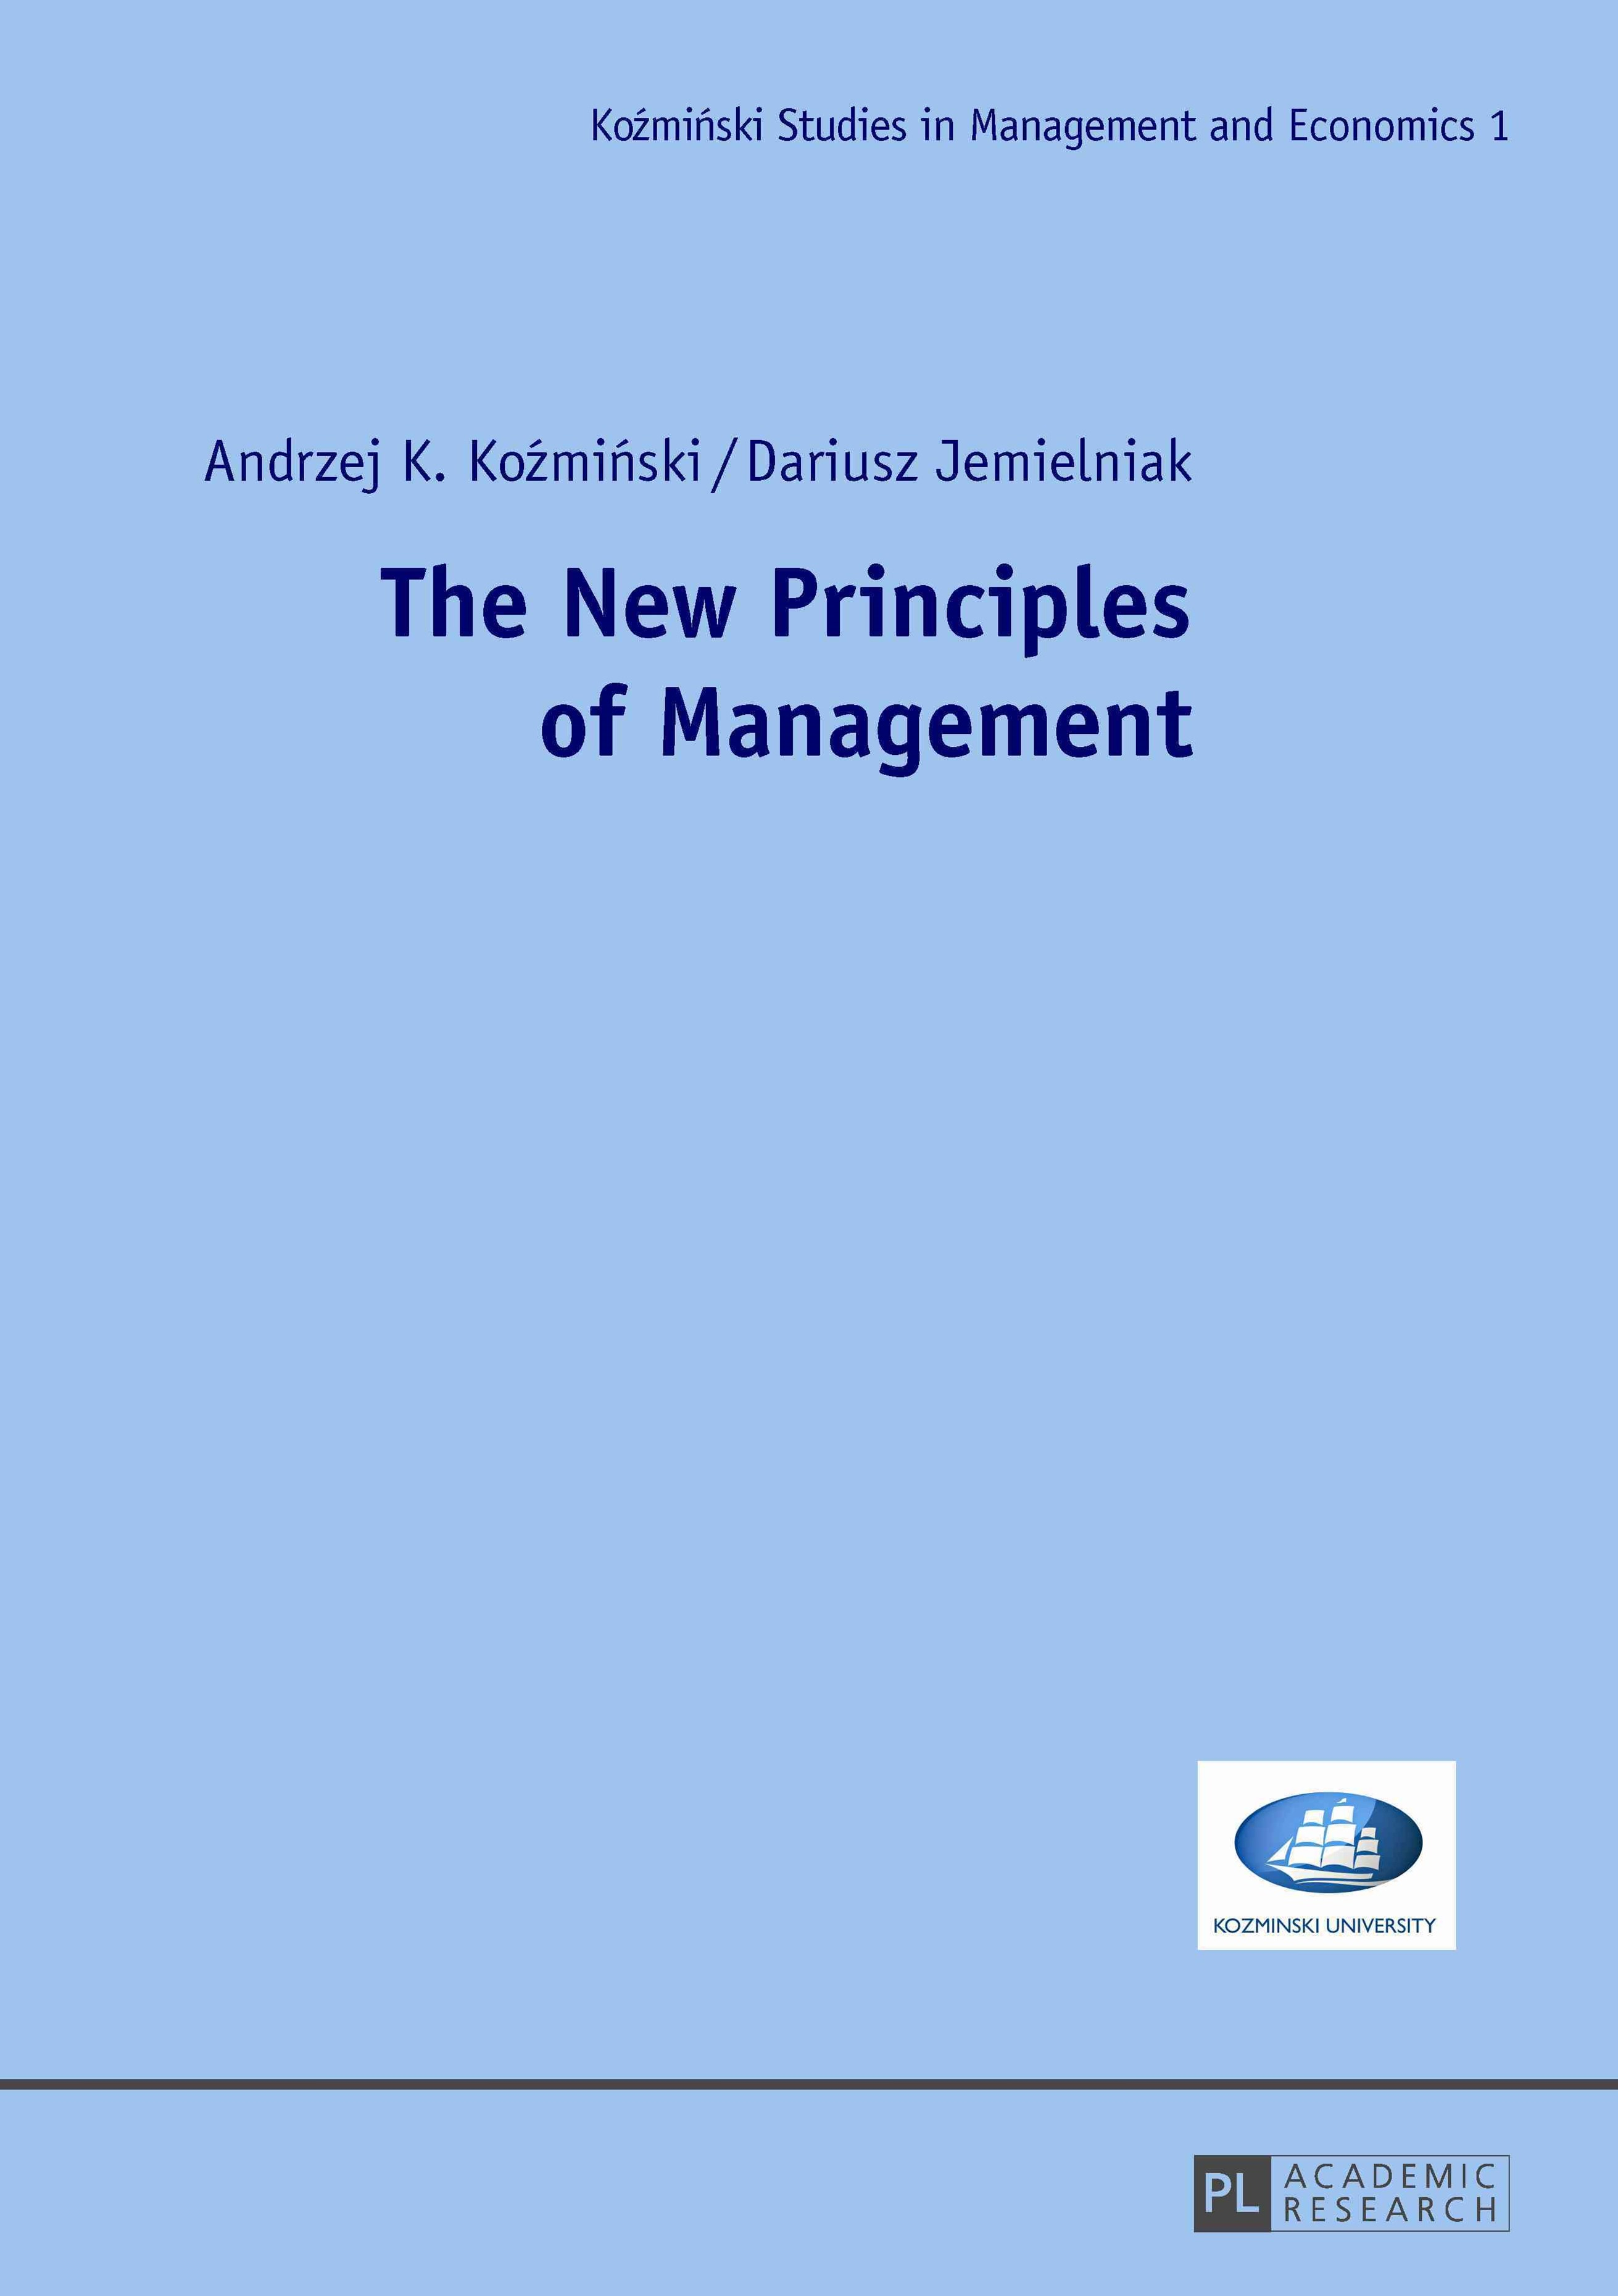 New Principles of Management